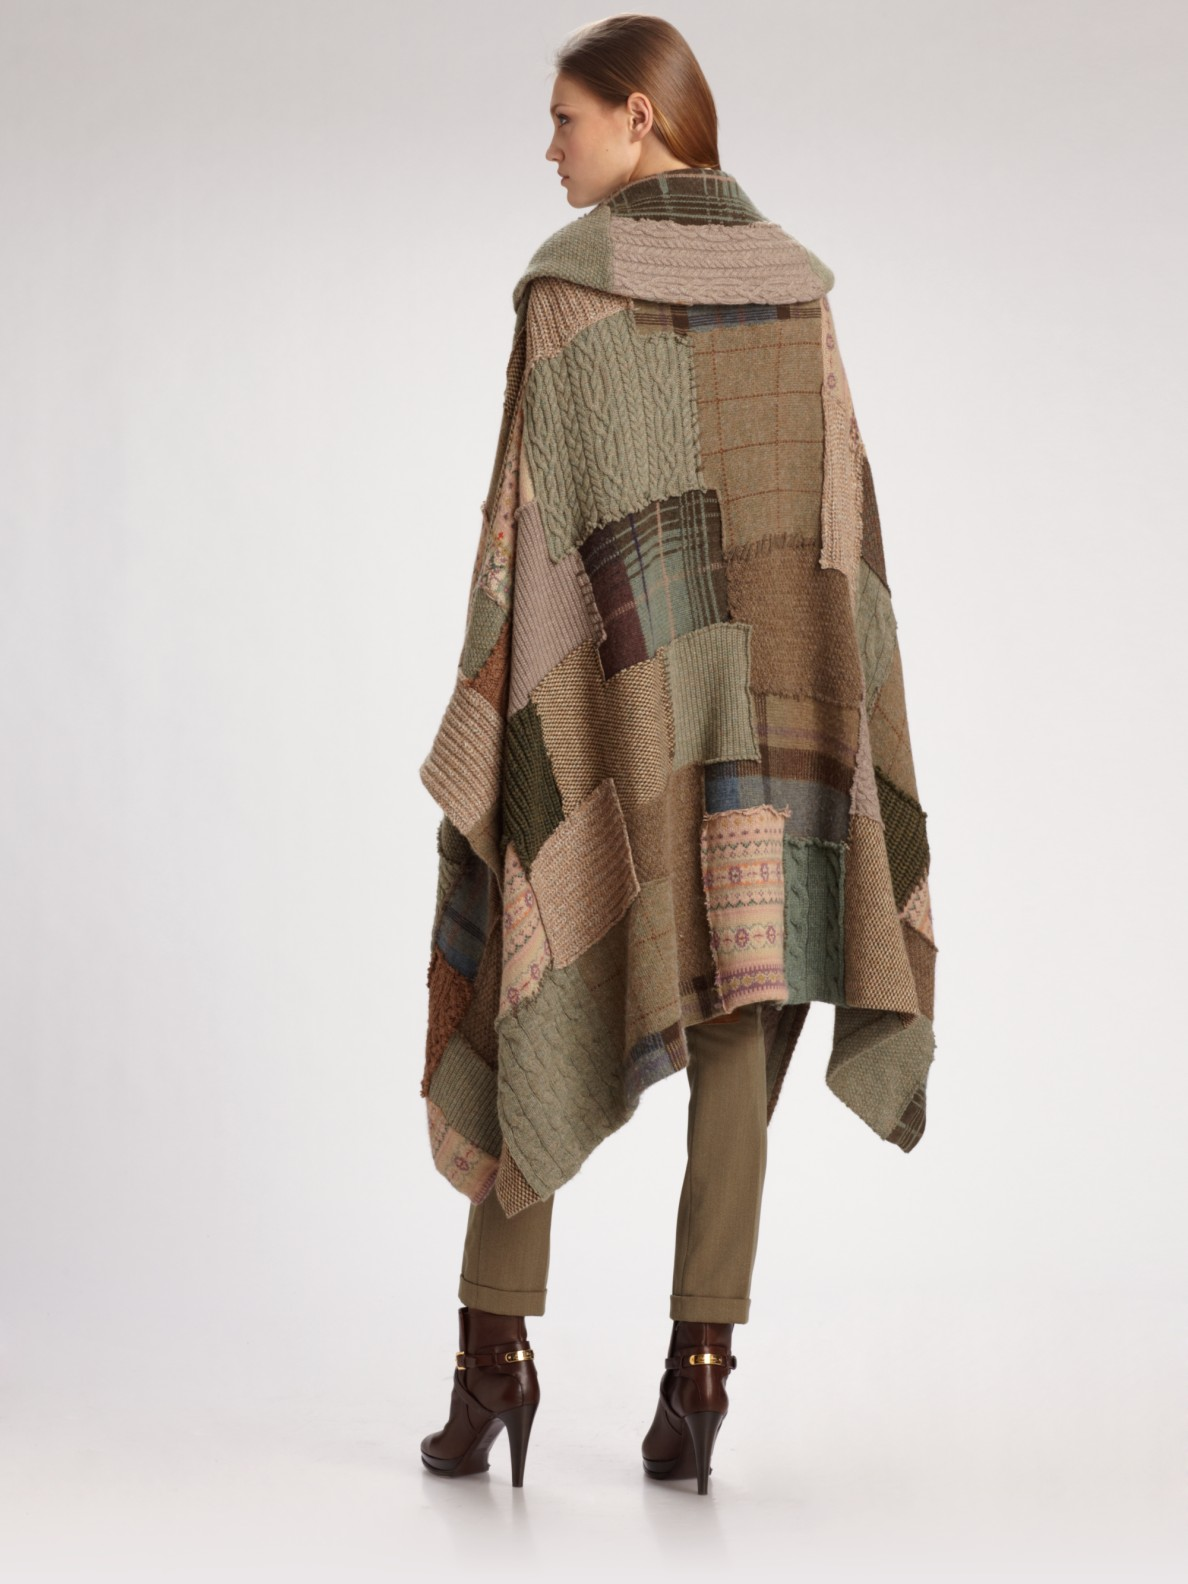 Ralph Lauren Blue Label Wool Cashmere Patchwork Poncho In